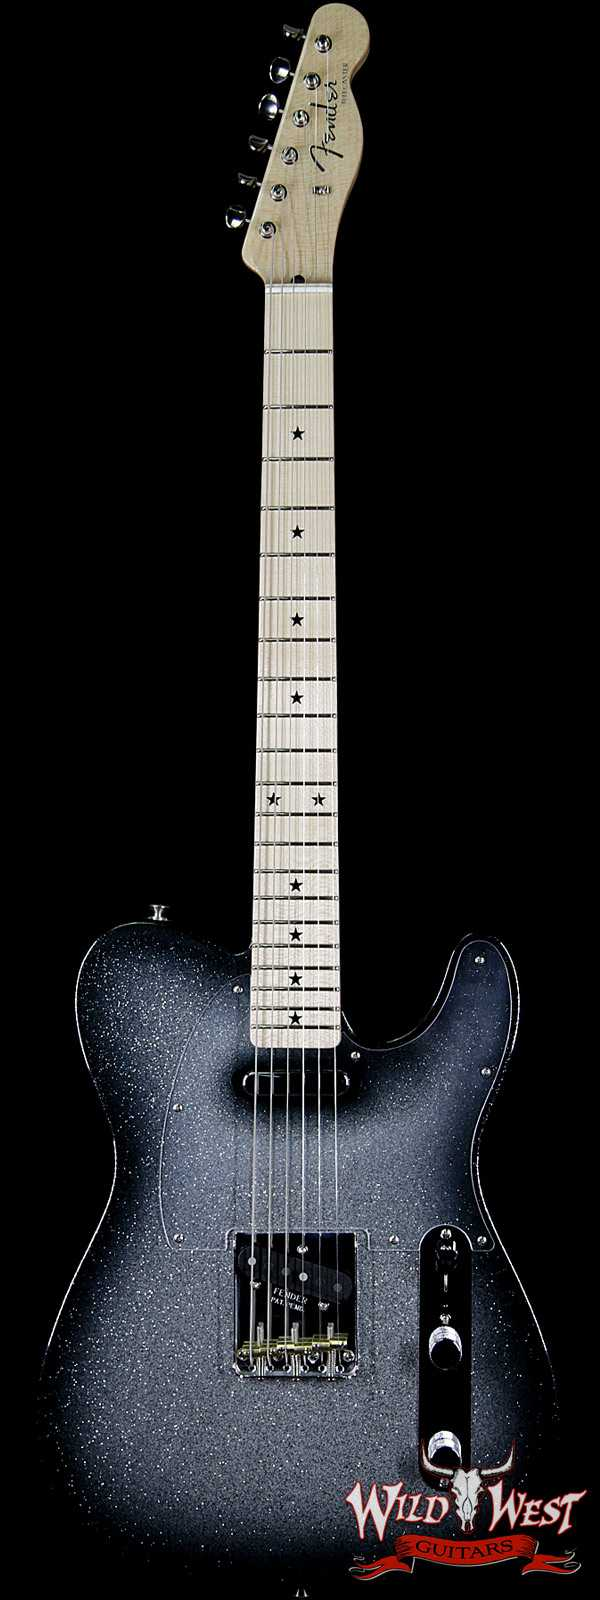 Fender Custom Shop Alan Hamel Founders Design Sparkle Telecaster Black Sparkle Burst